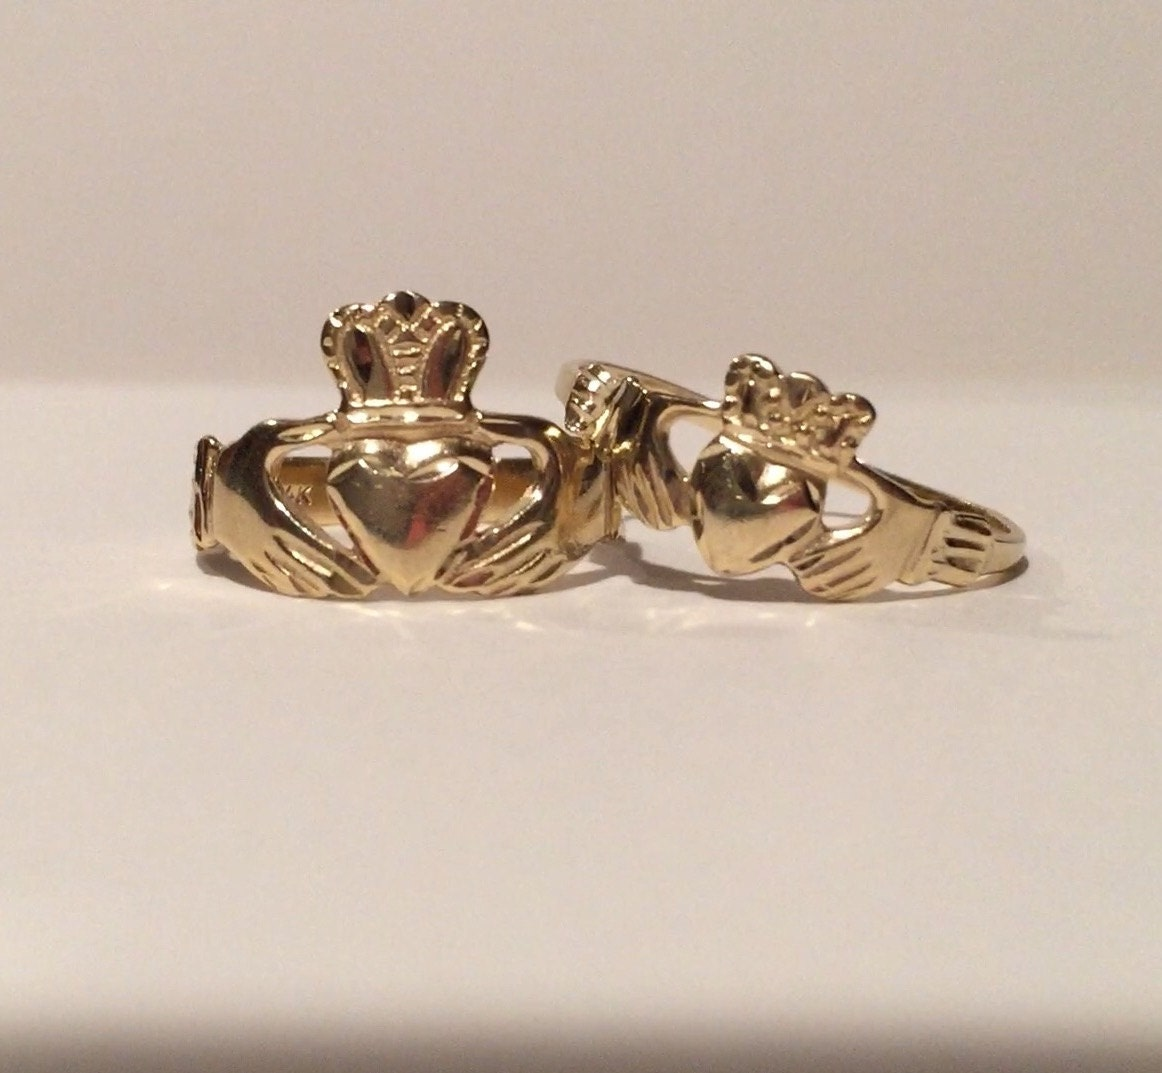 men 39 s and woman 39 s 14k gold claddagh ring set by rings4youboth. Black Bedroom Furniture Sets. Home Design Ideas